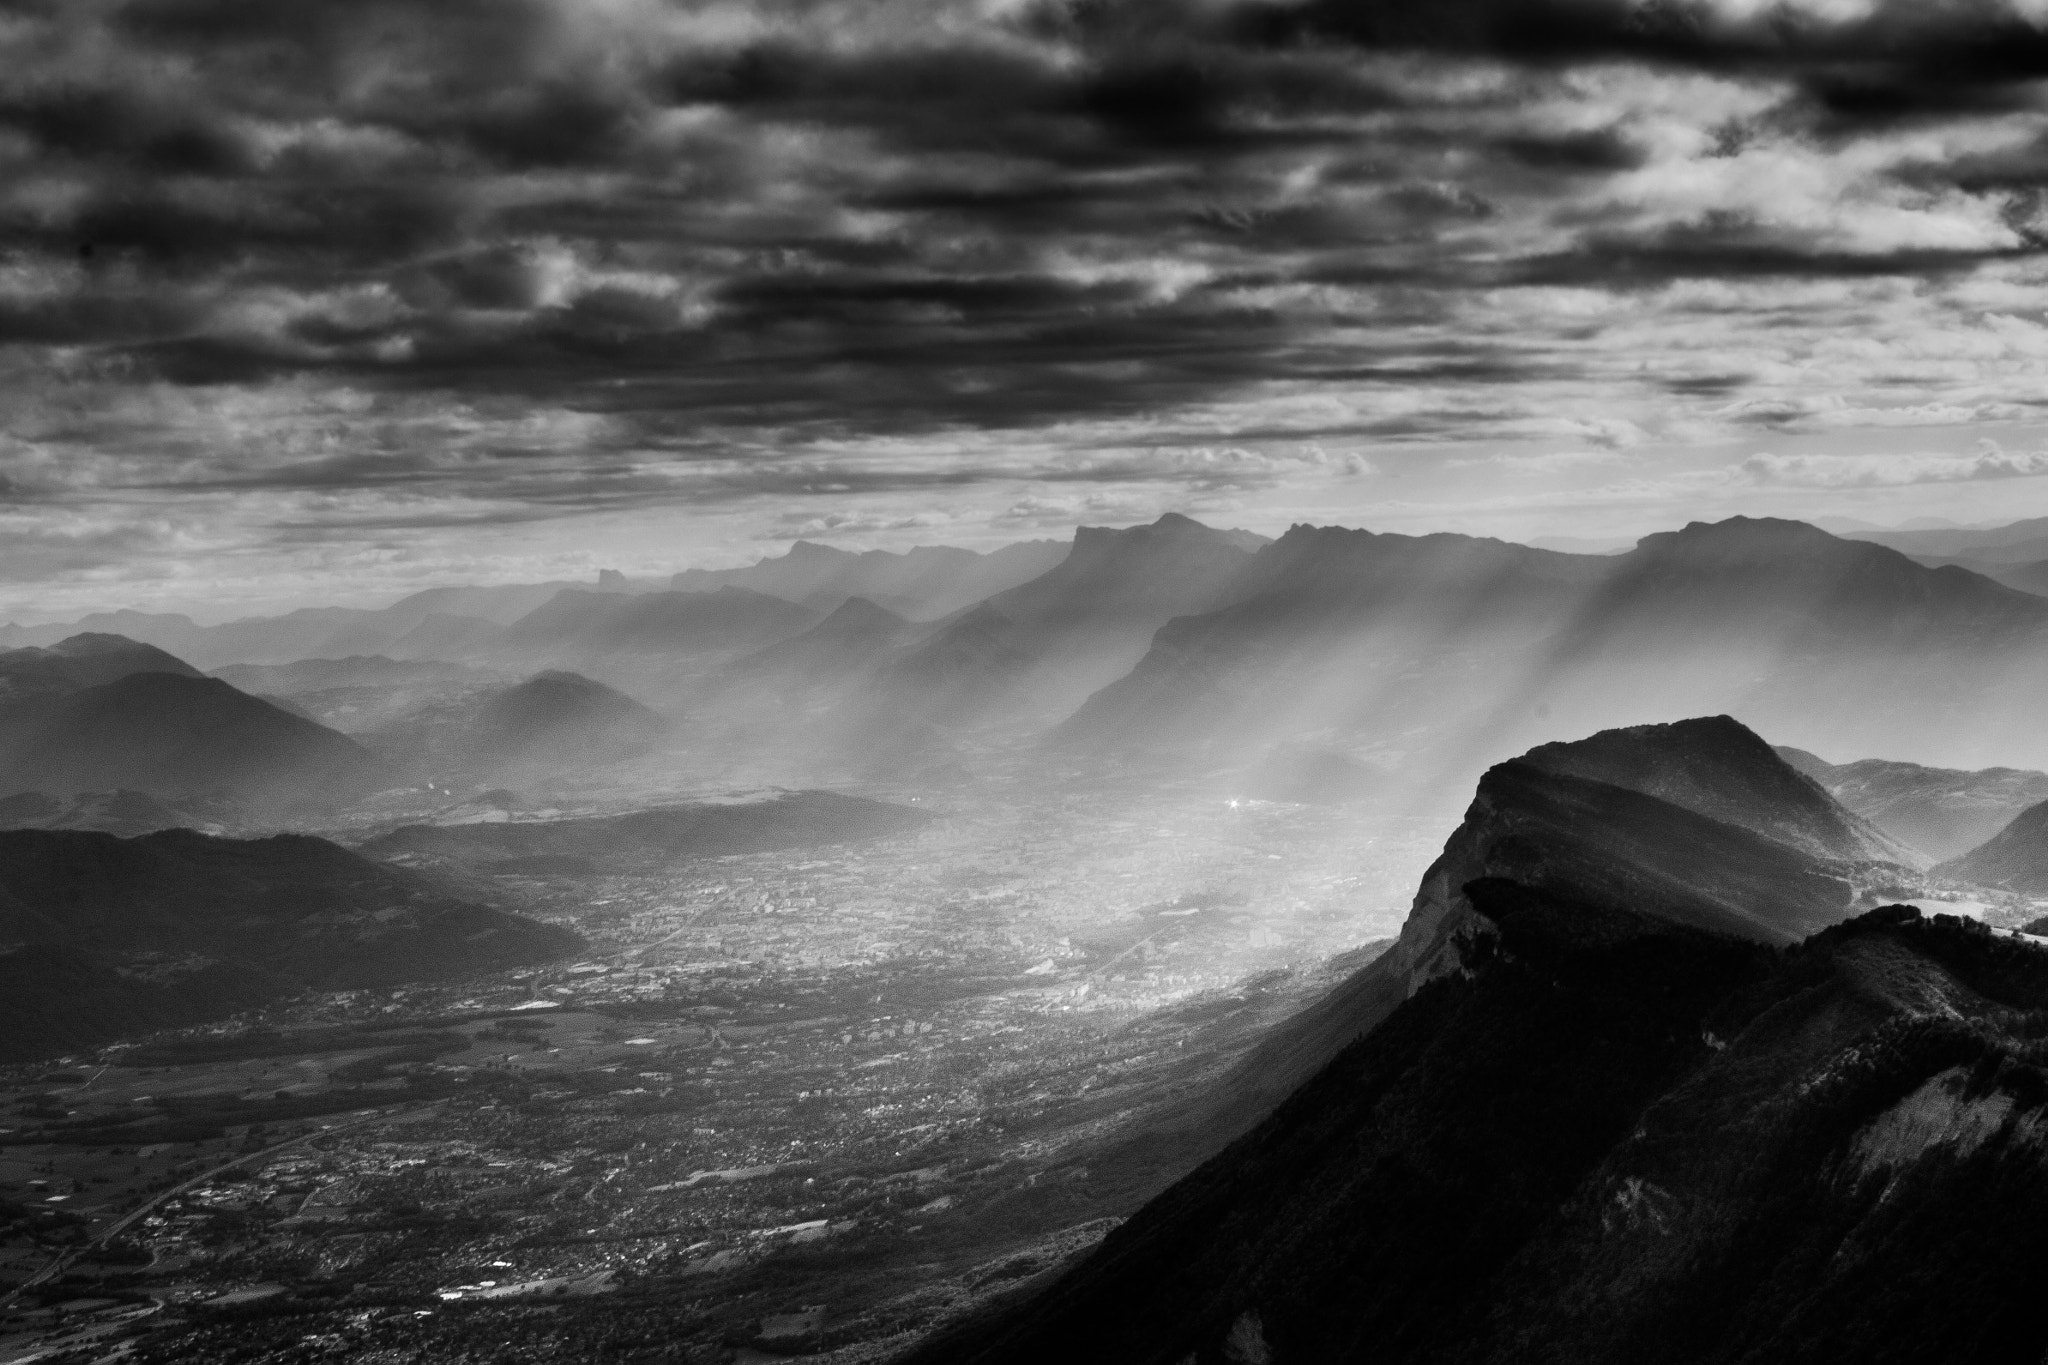 Photograph sunshine on grenoble by vincent viargues on 500px